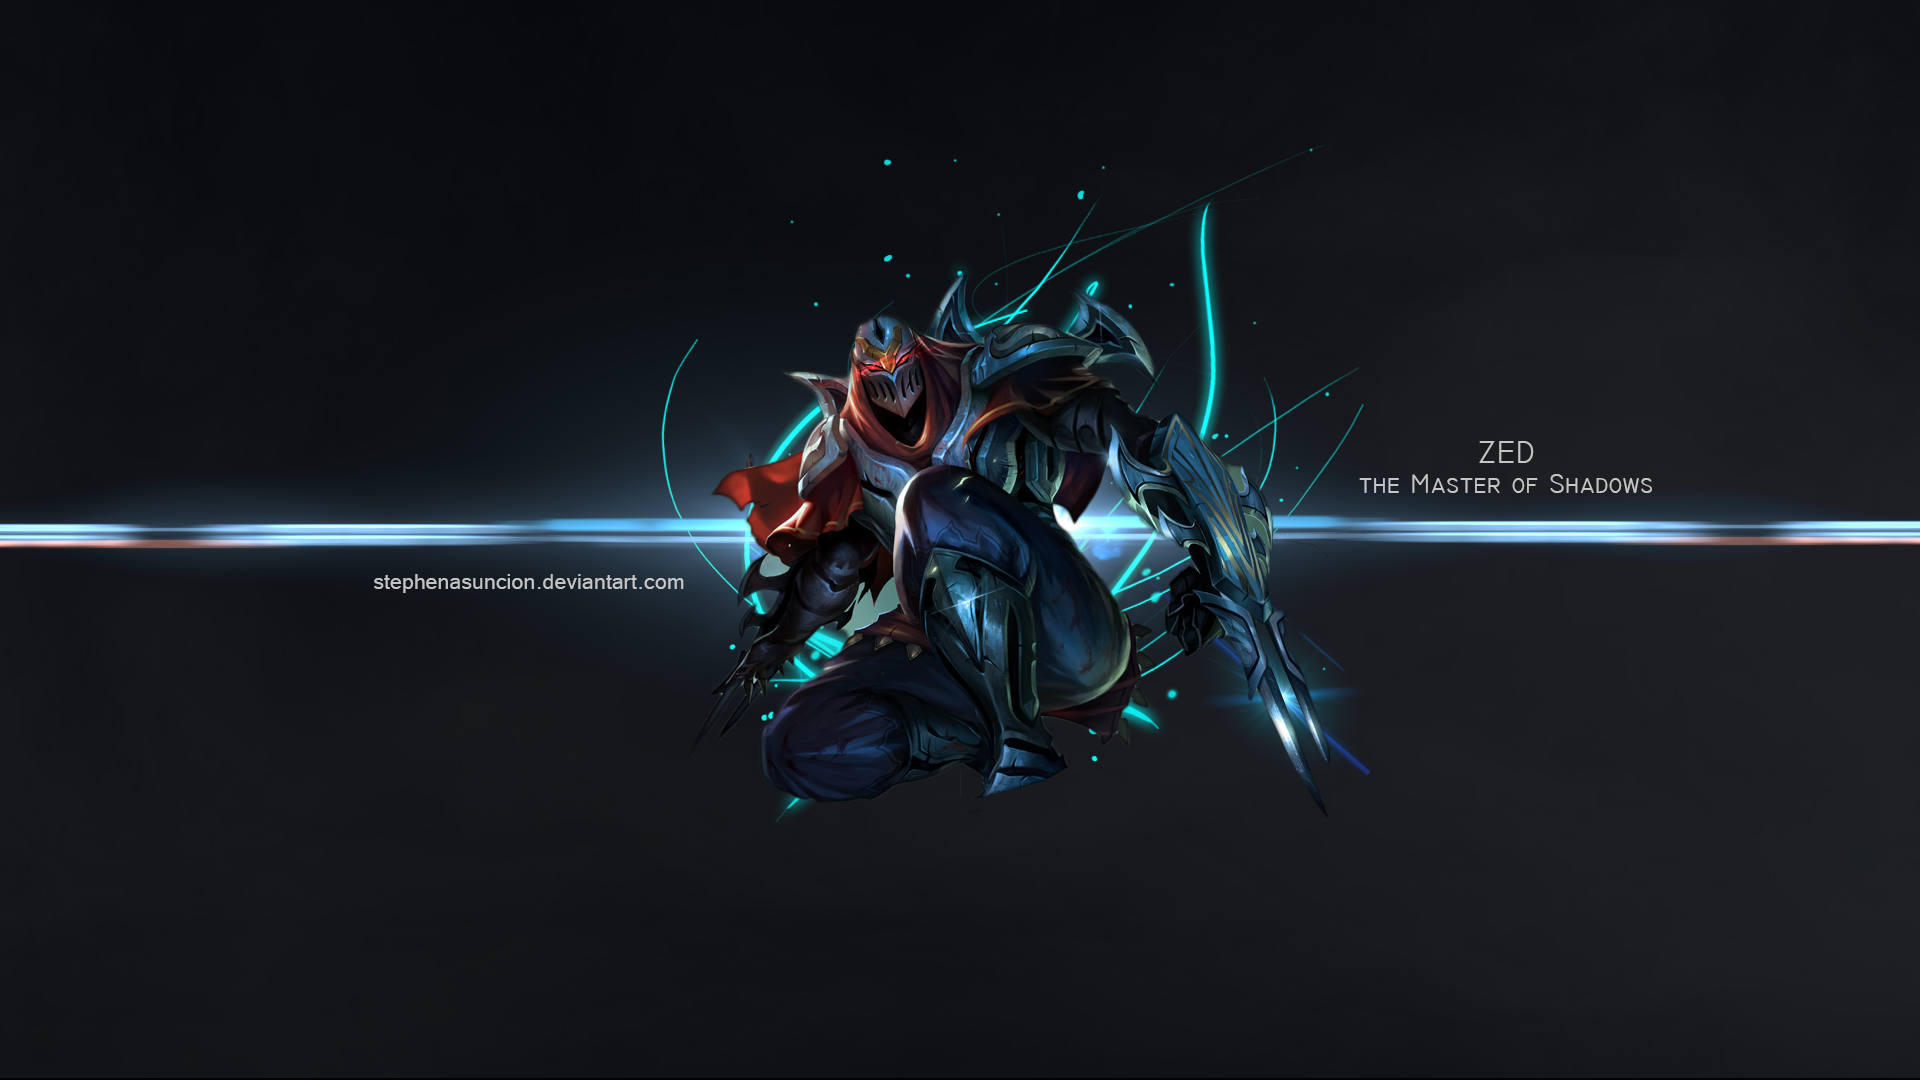 . Hdpng.com League Of Legends   Zed The Master Of Shadows By Stephenasuncion - Zed The Master Of Shadows, Transparent background PNG HD thumbnail